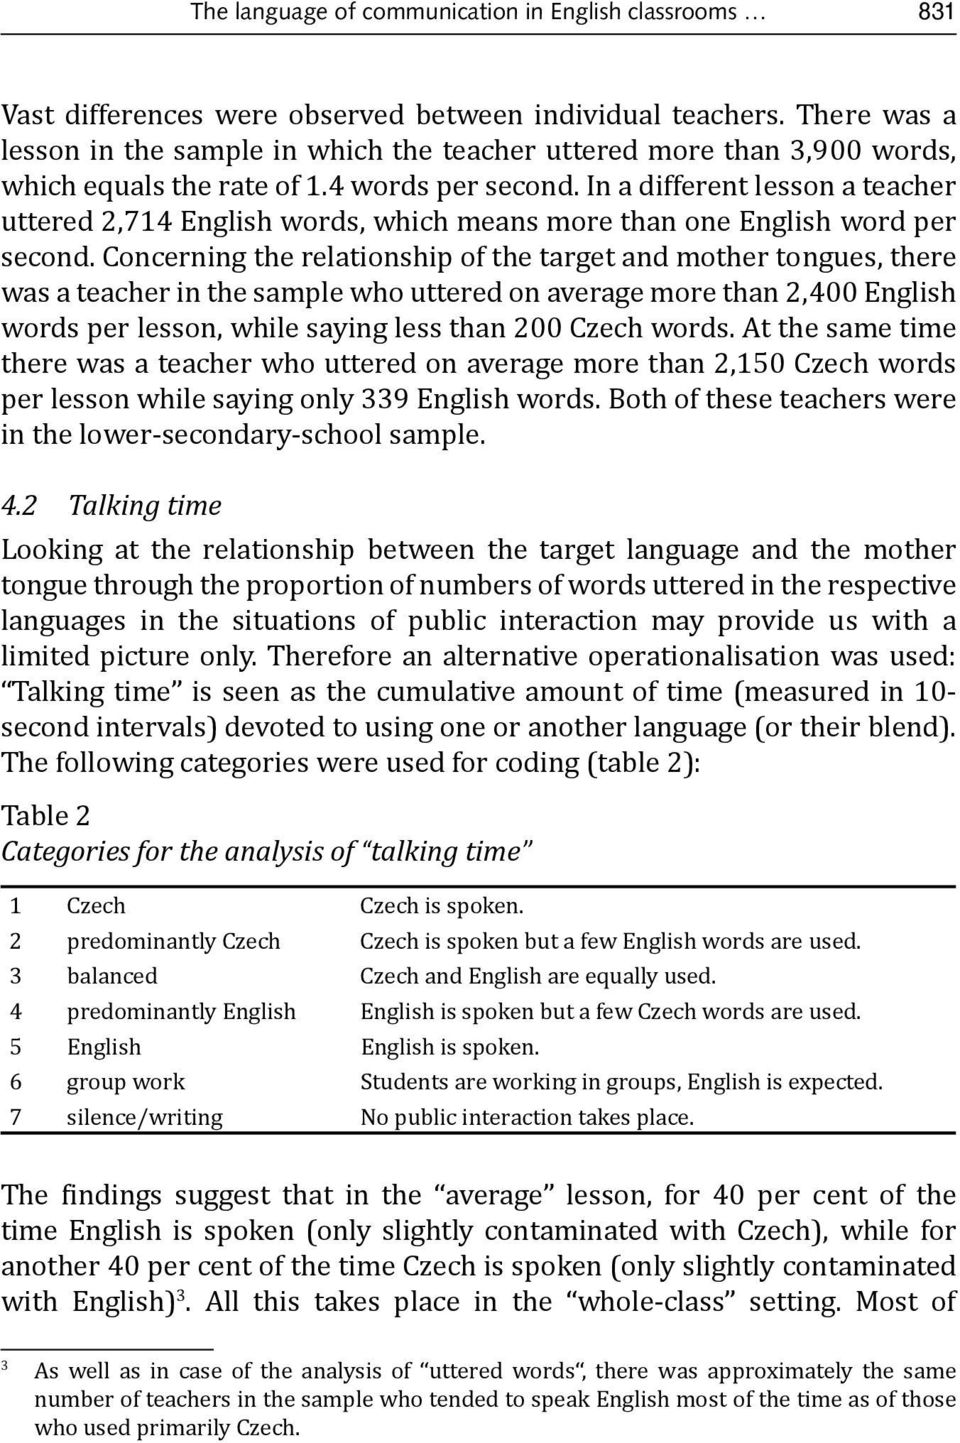 In a different lesson a teacher uttered 2,714 English words, which means more than one English word per second.